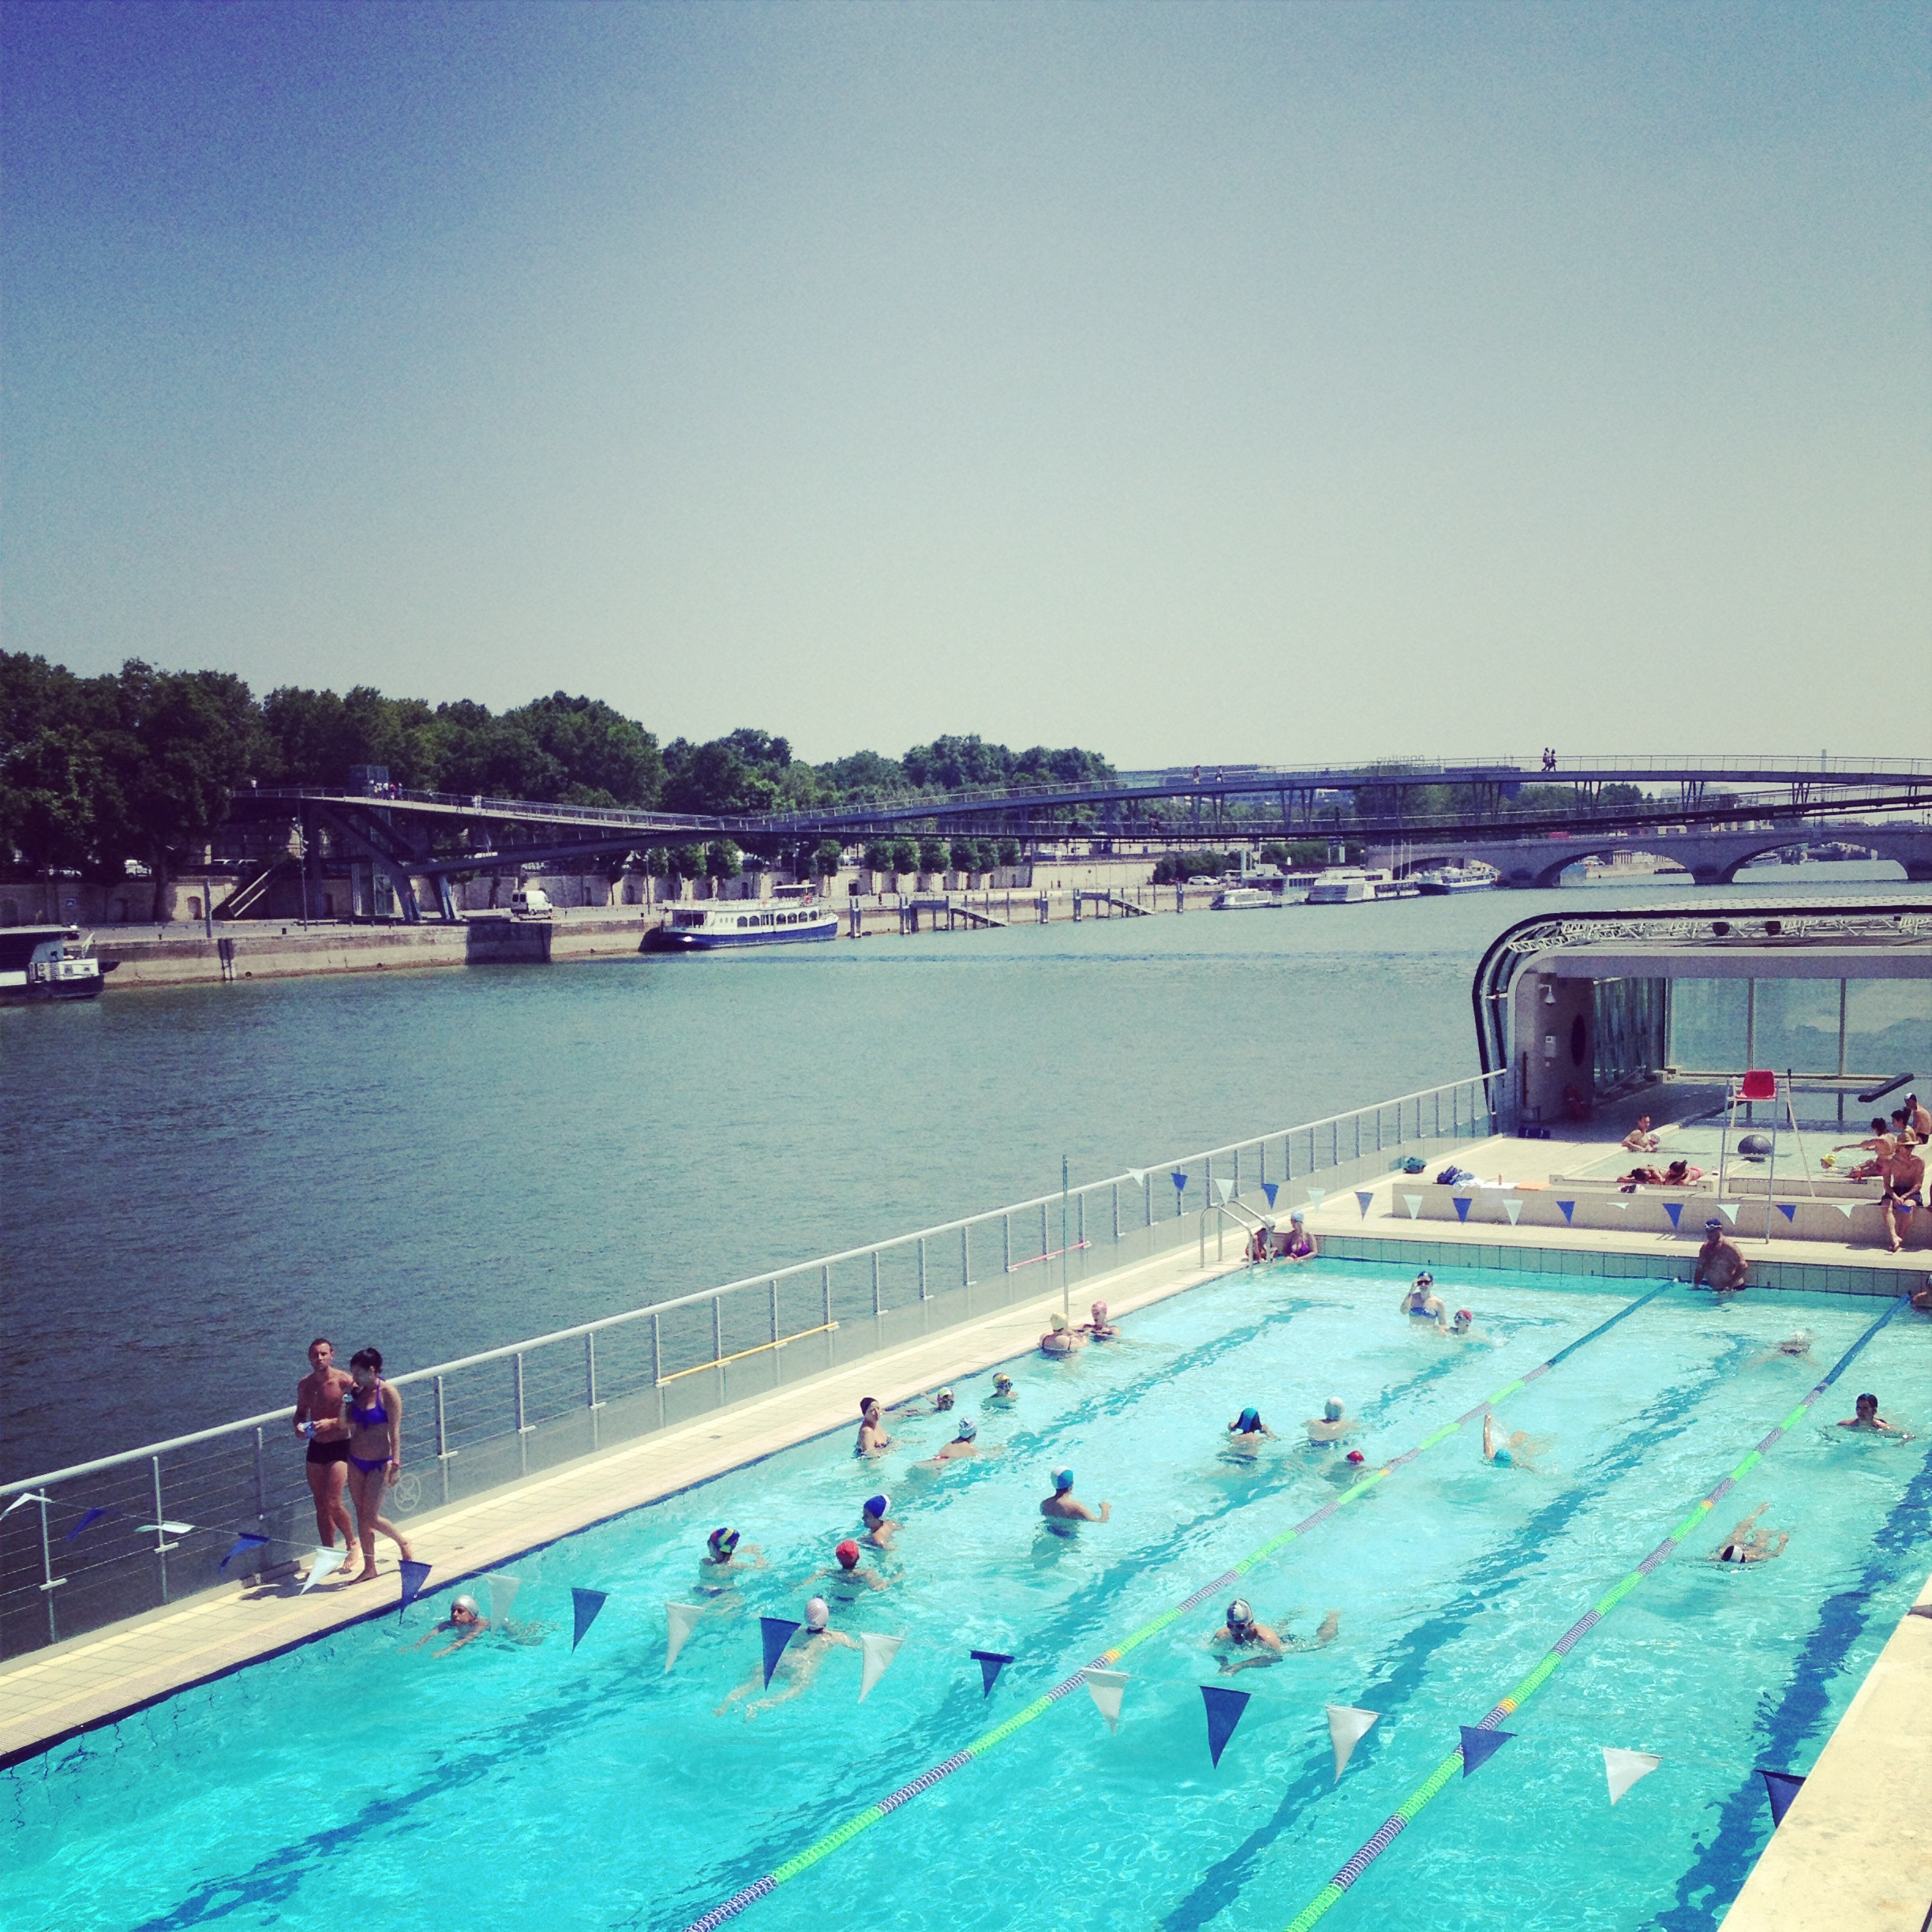 Qualche idea per rinfrescarsi a parigi questo weekend for Piscine 75012